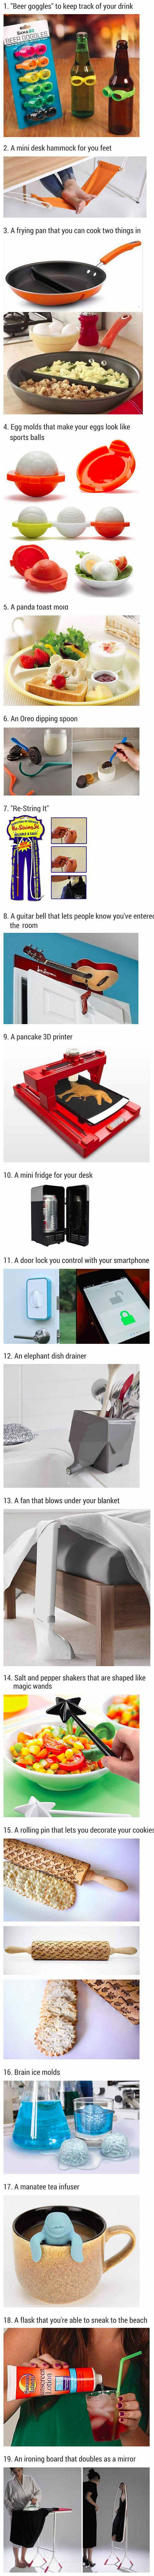 To be honest, the door lock that you can control with your smartphone isn't very secure.